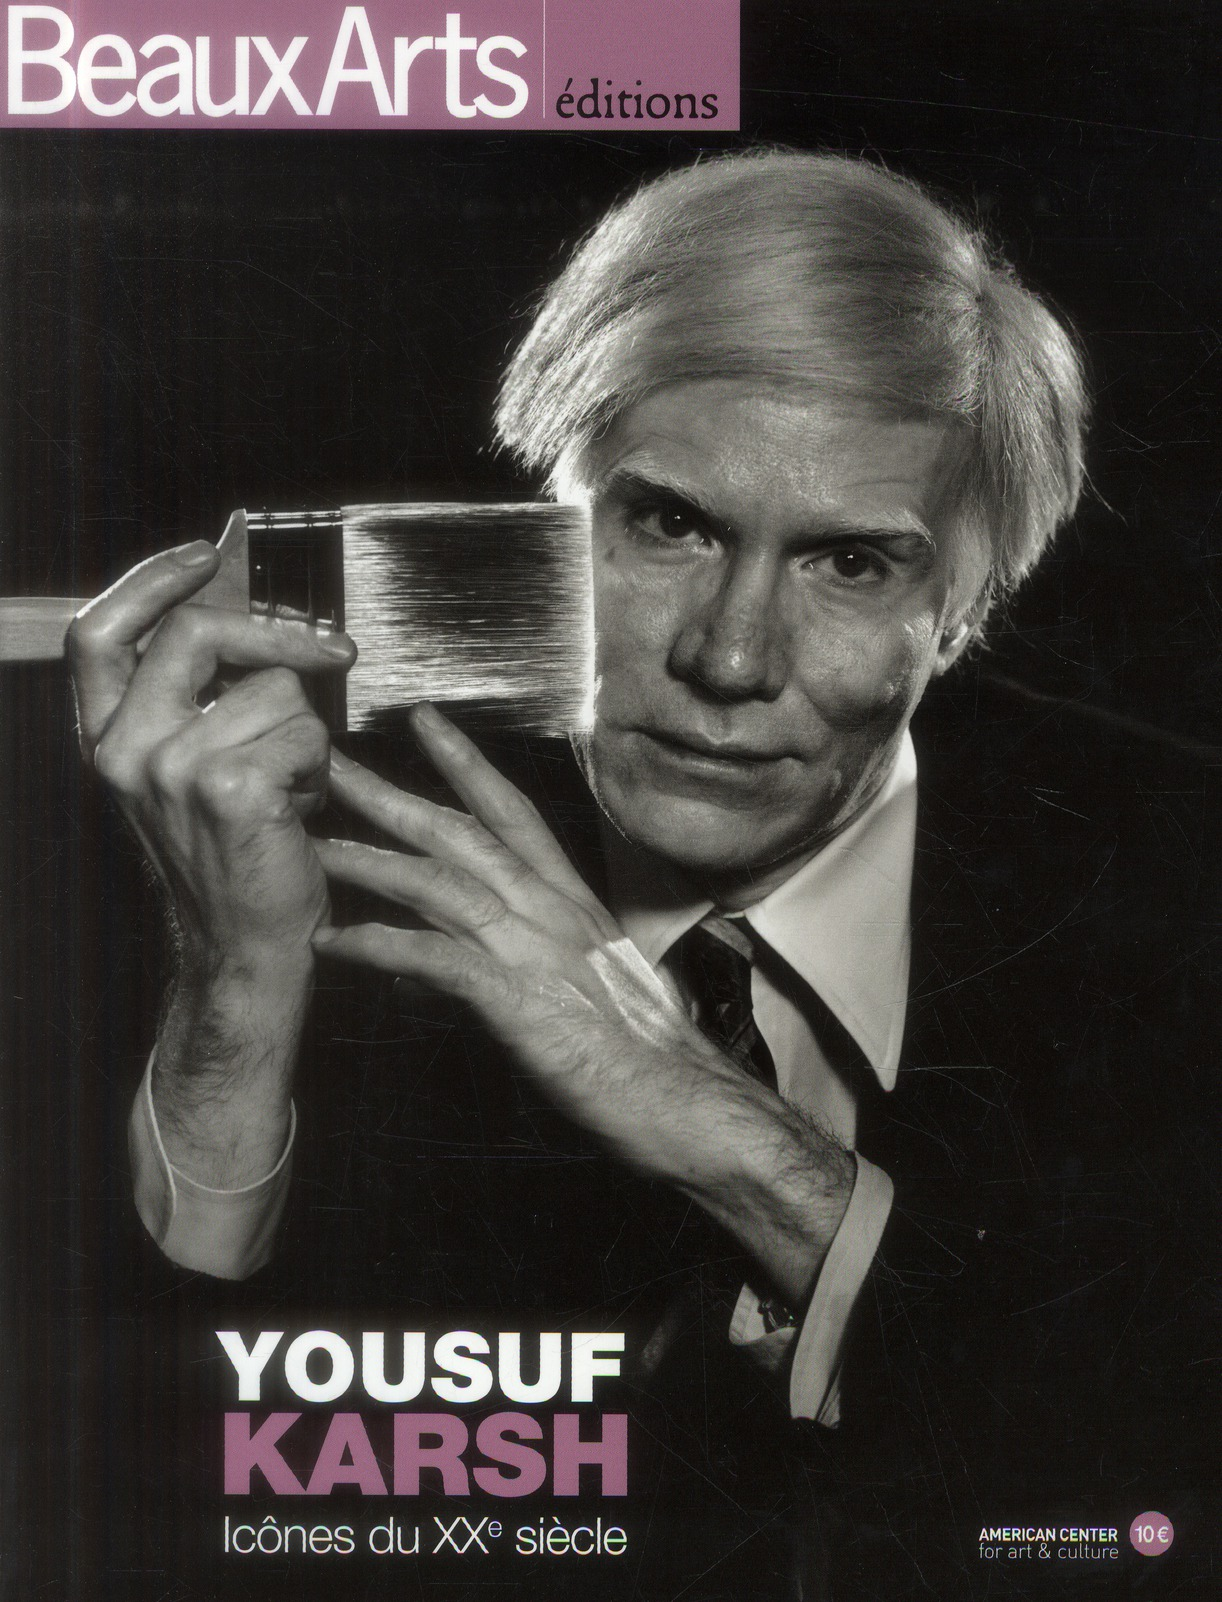 YOUSUF KARSH : ICONES DU XXE SIECLE